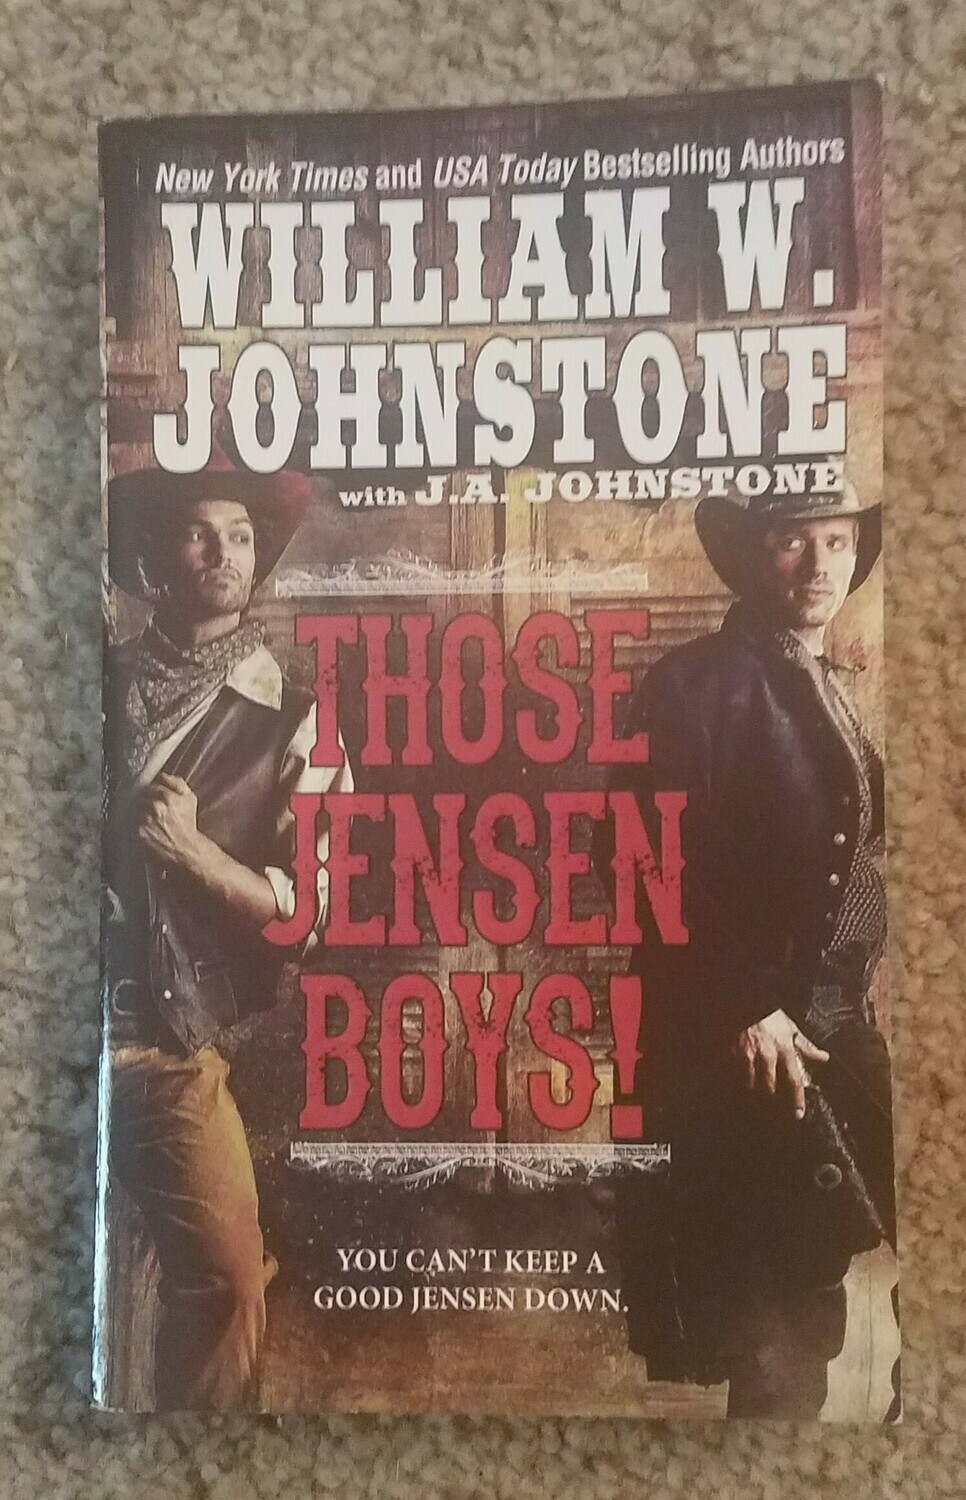 Those Jensen Boys! by William W. Johnstone with J.A. Johnstone